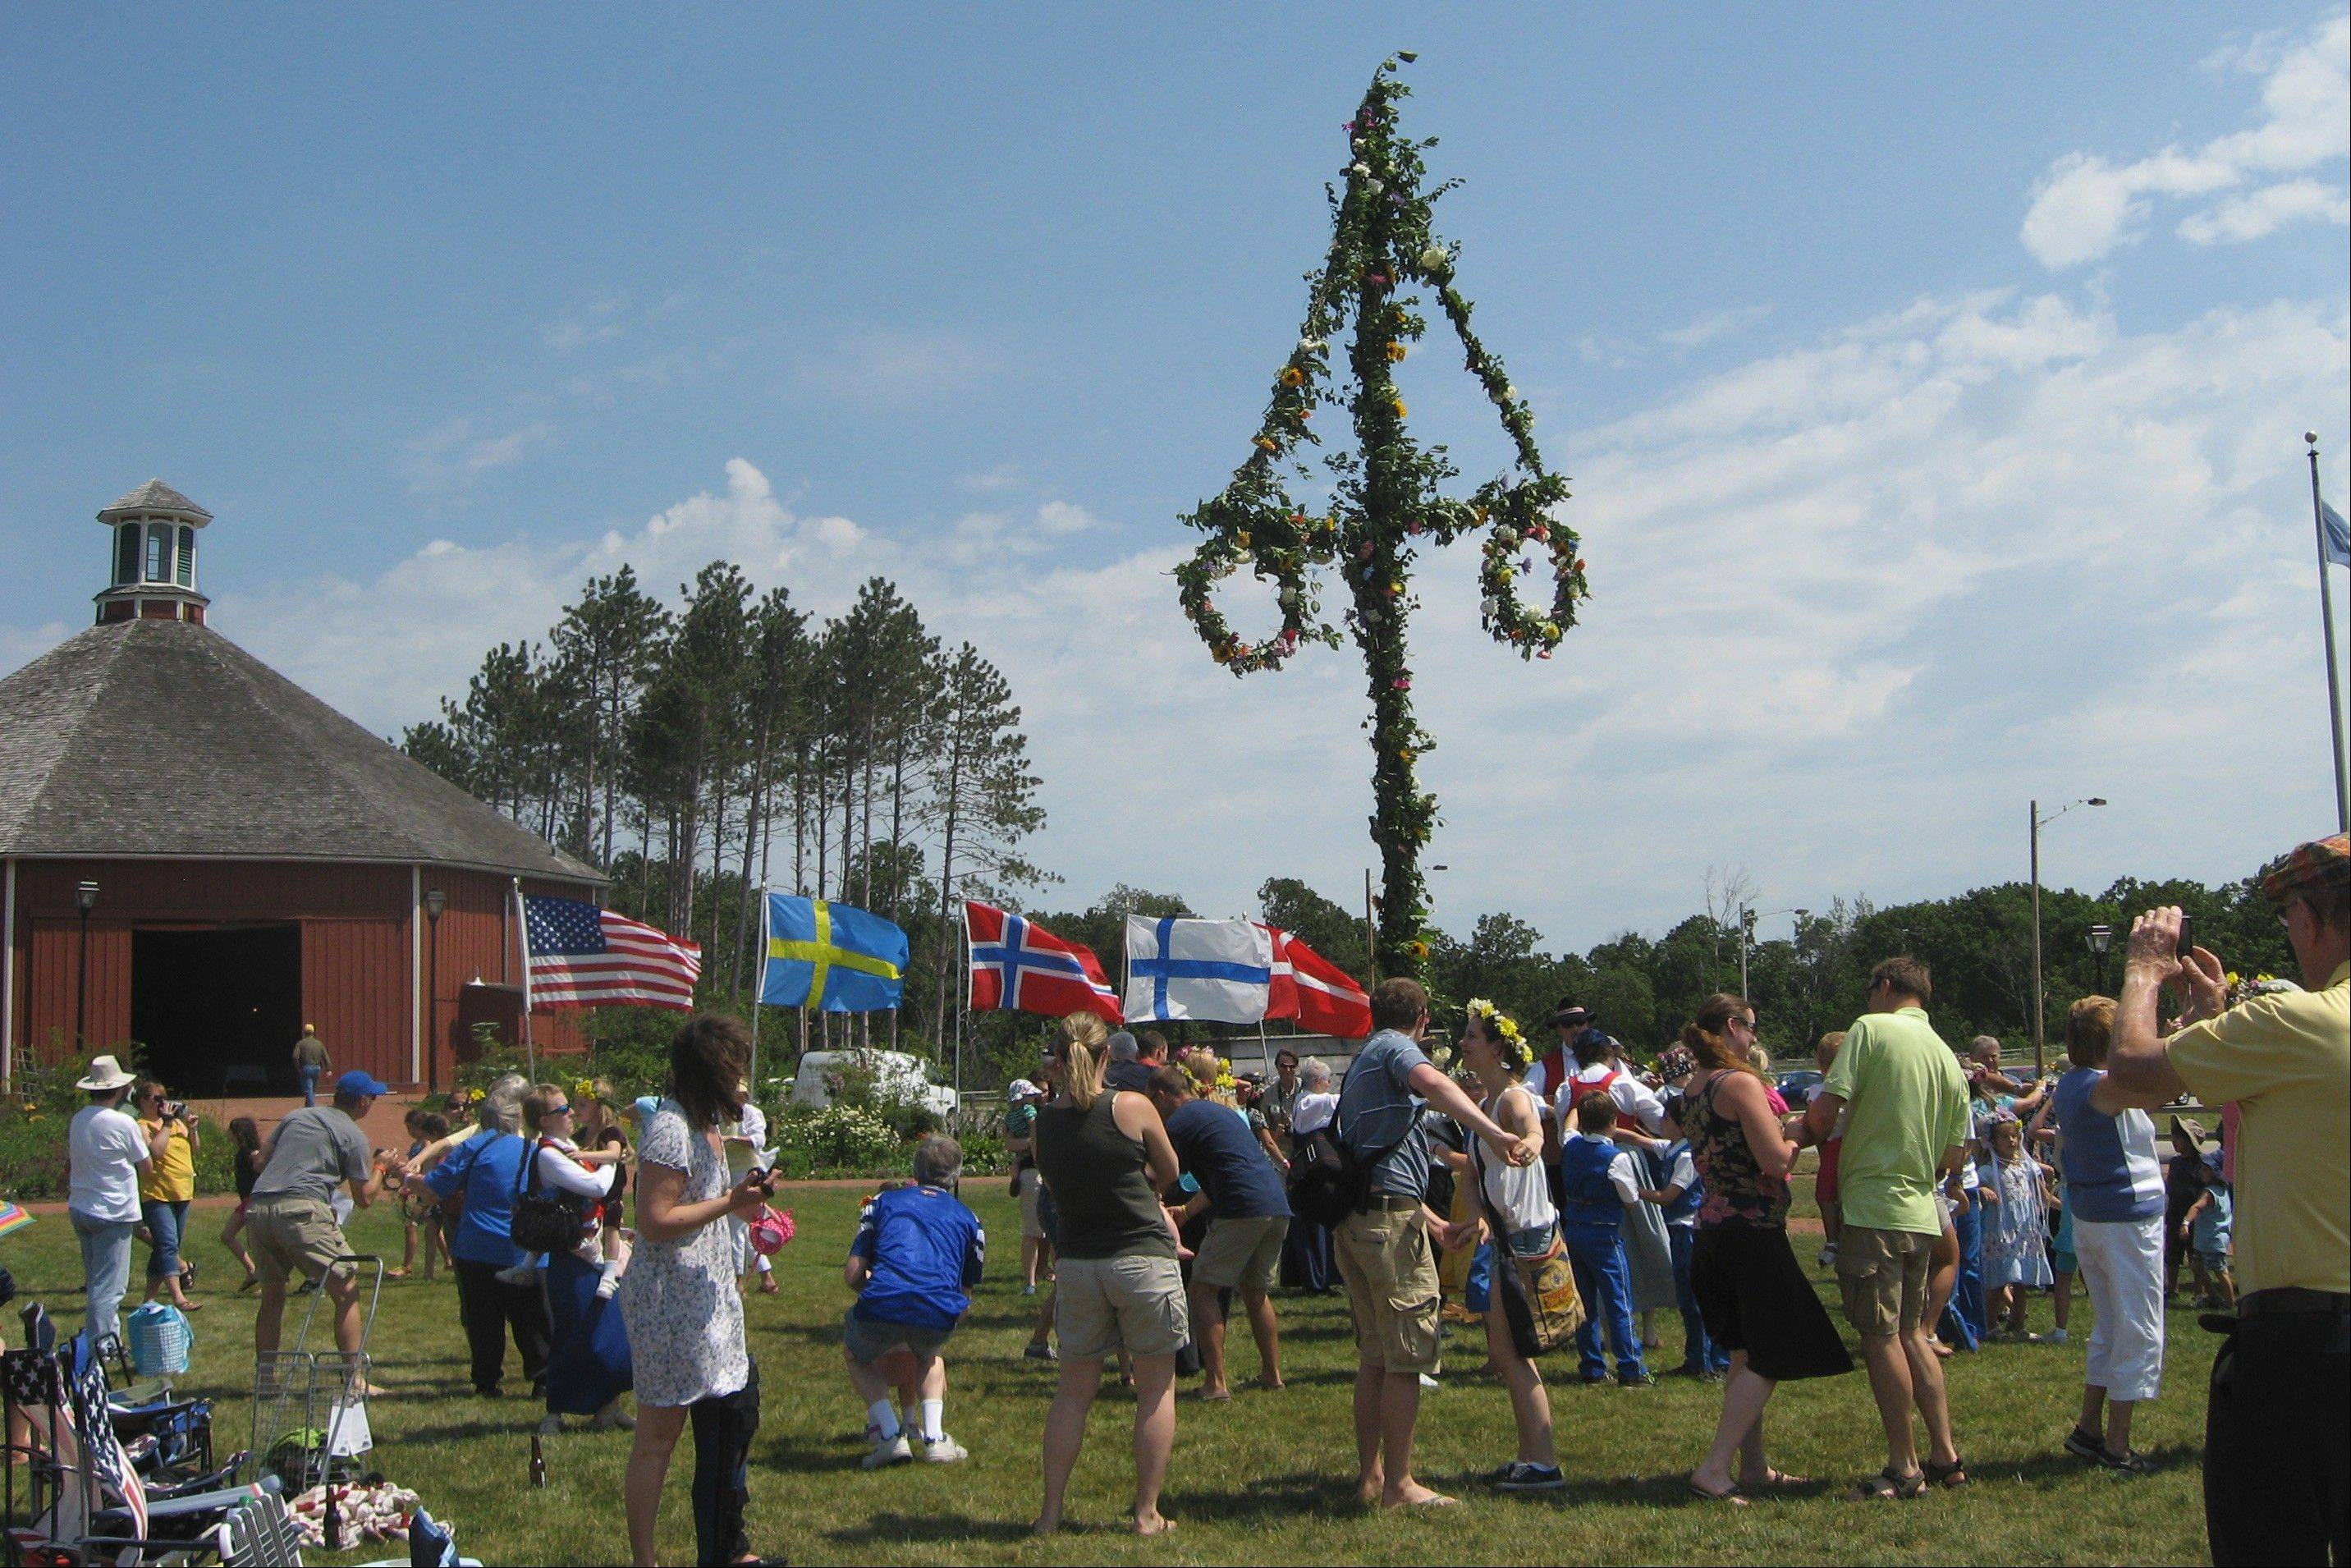 Celebrate Wisconsin folk life at Old World Wisconsin in Eagle the last two weekends in June.